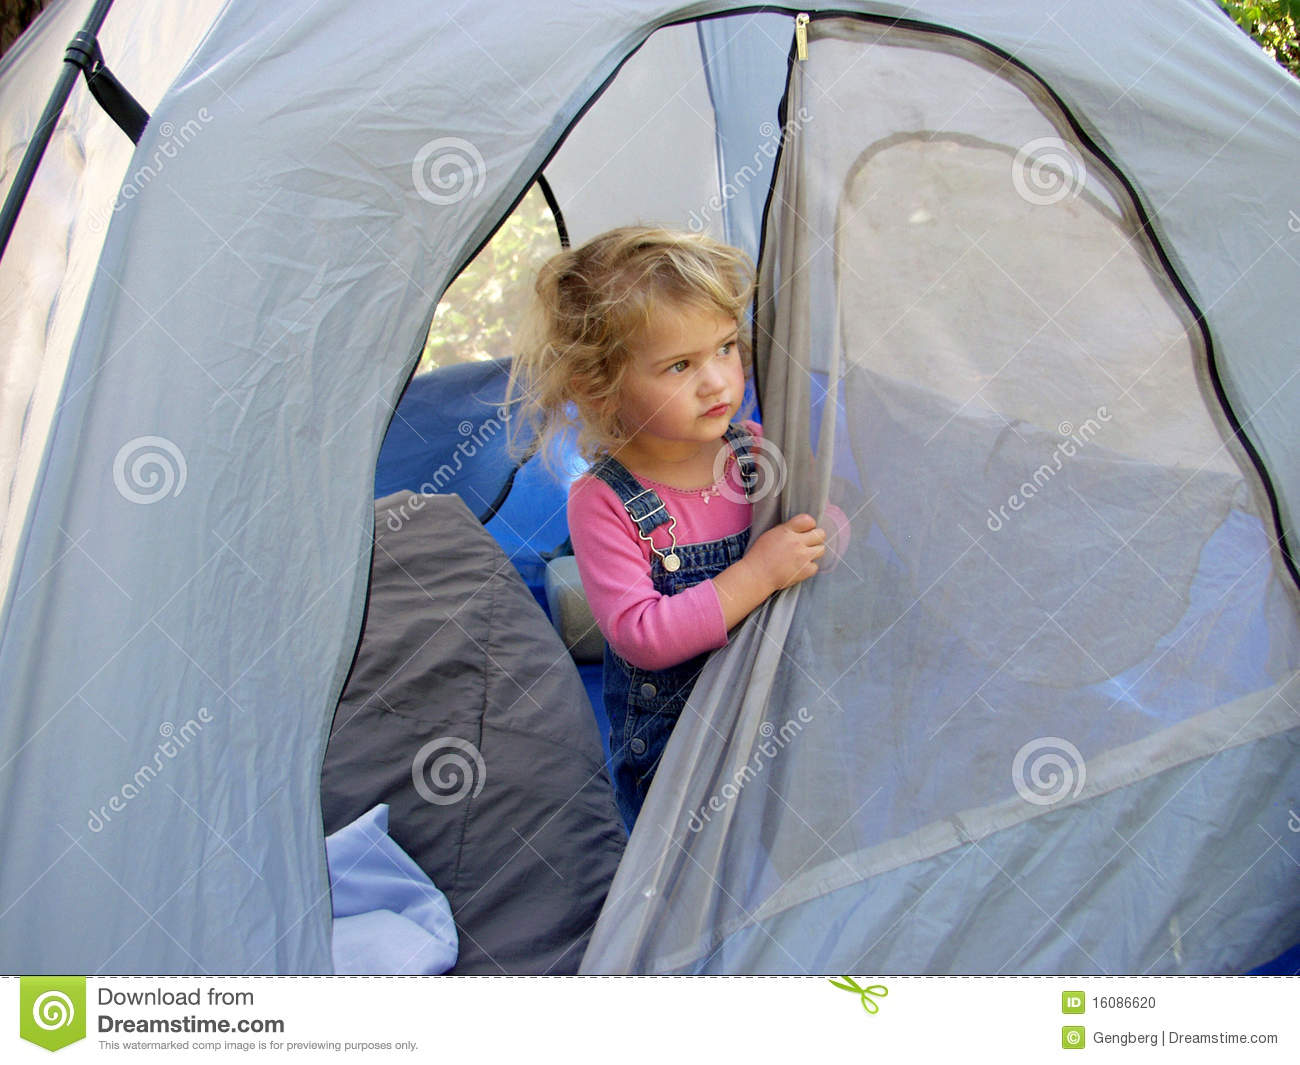 Stock Photo Girl Tent  sc 1 st  Megapixl & Girl Tent Stock Photo 16086620 - Megapixl